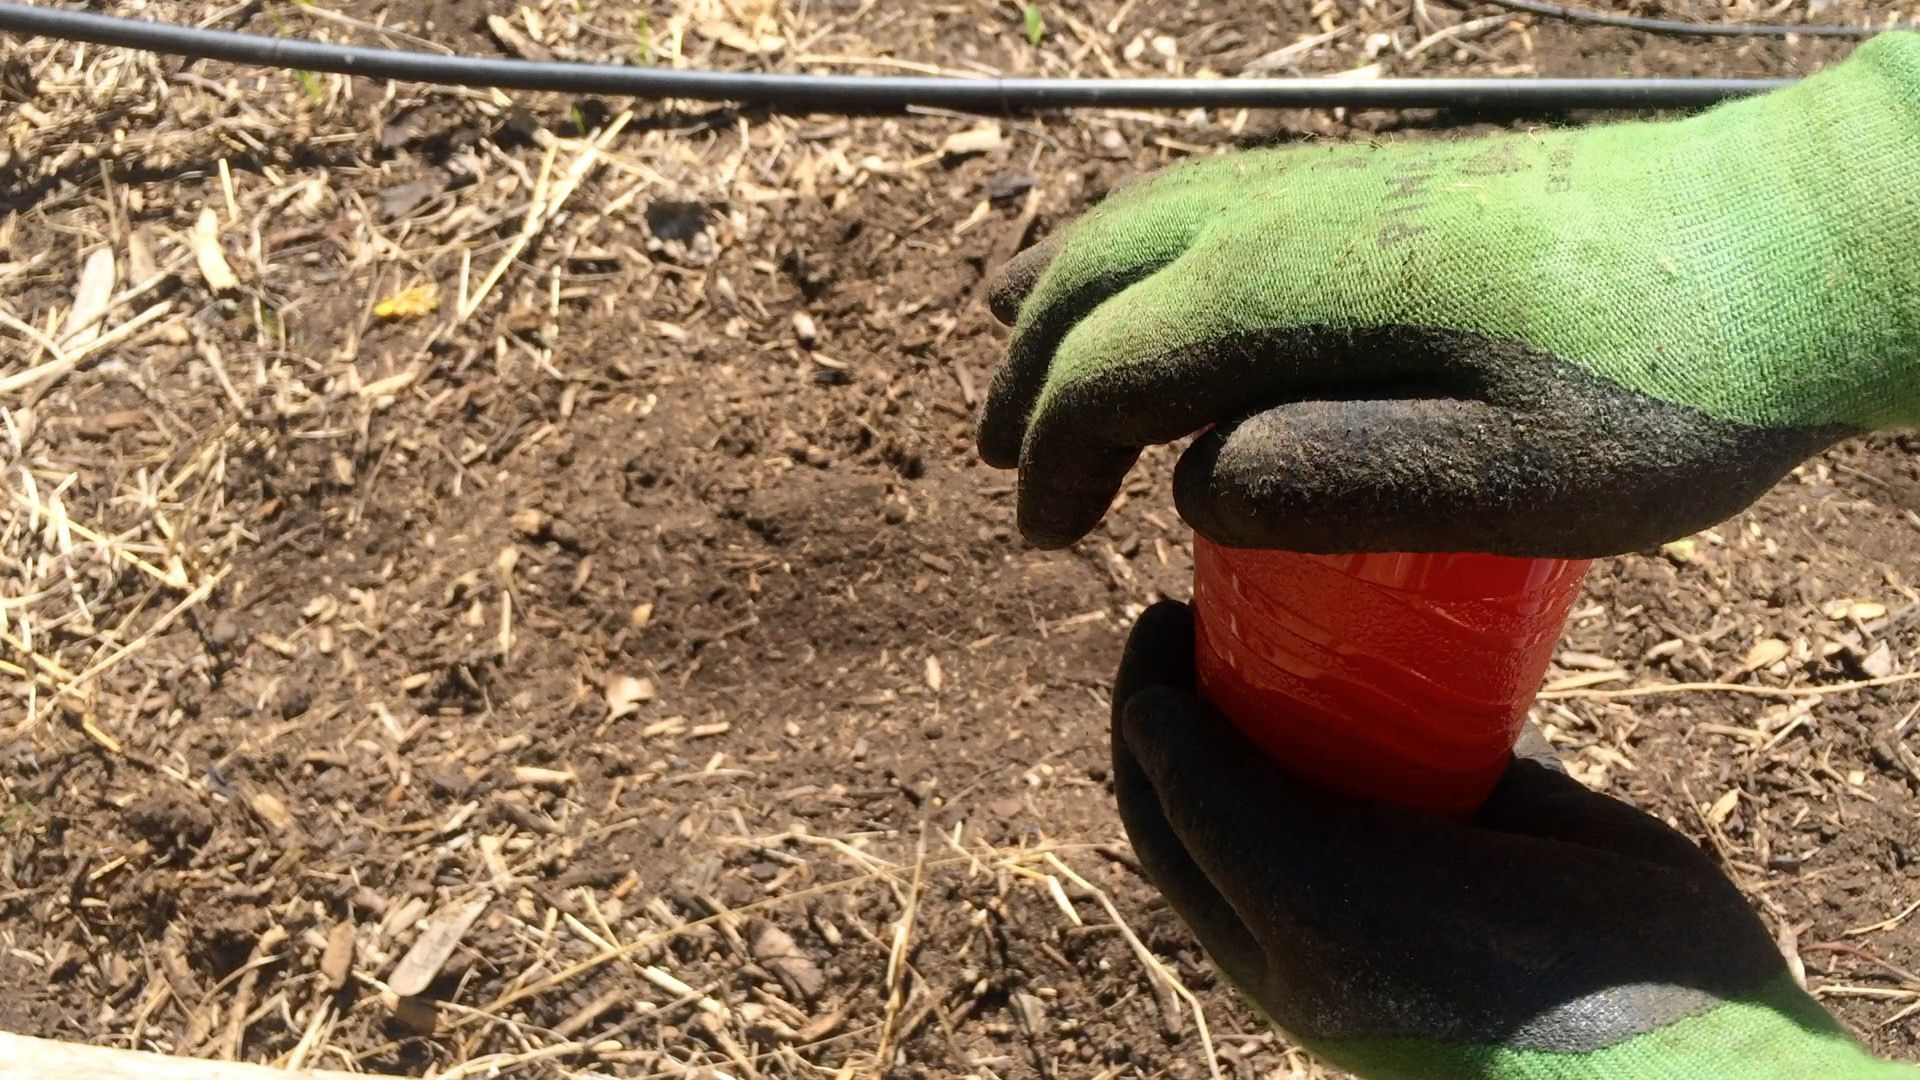 Creative Way to Plant Carrots Using Coffee Grounds: 7 Steps